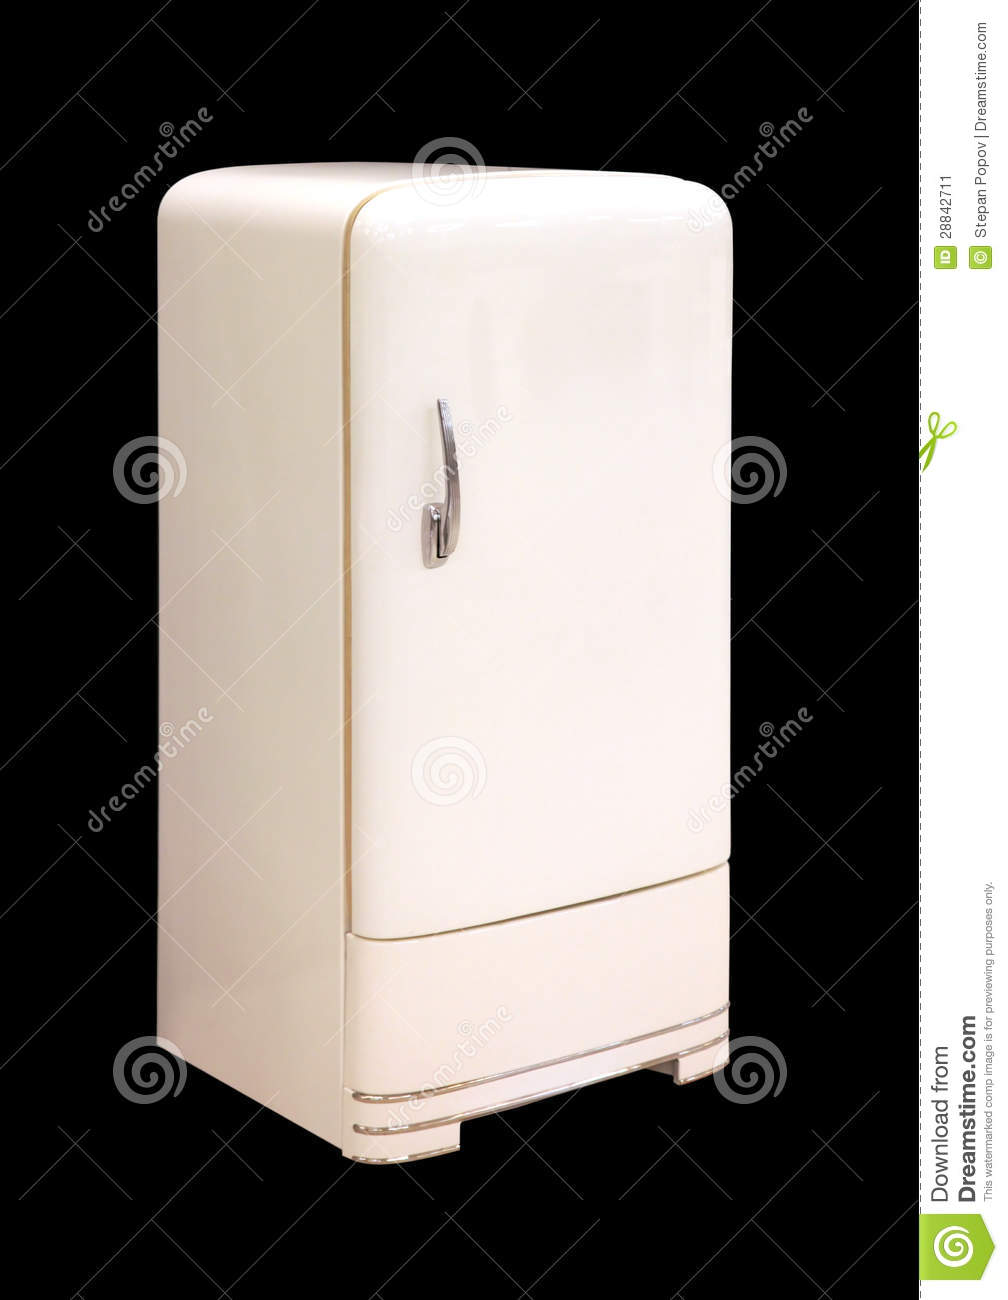 Vintage Things. Old Refrigerator Stock Image - Image: 28842711